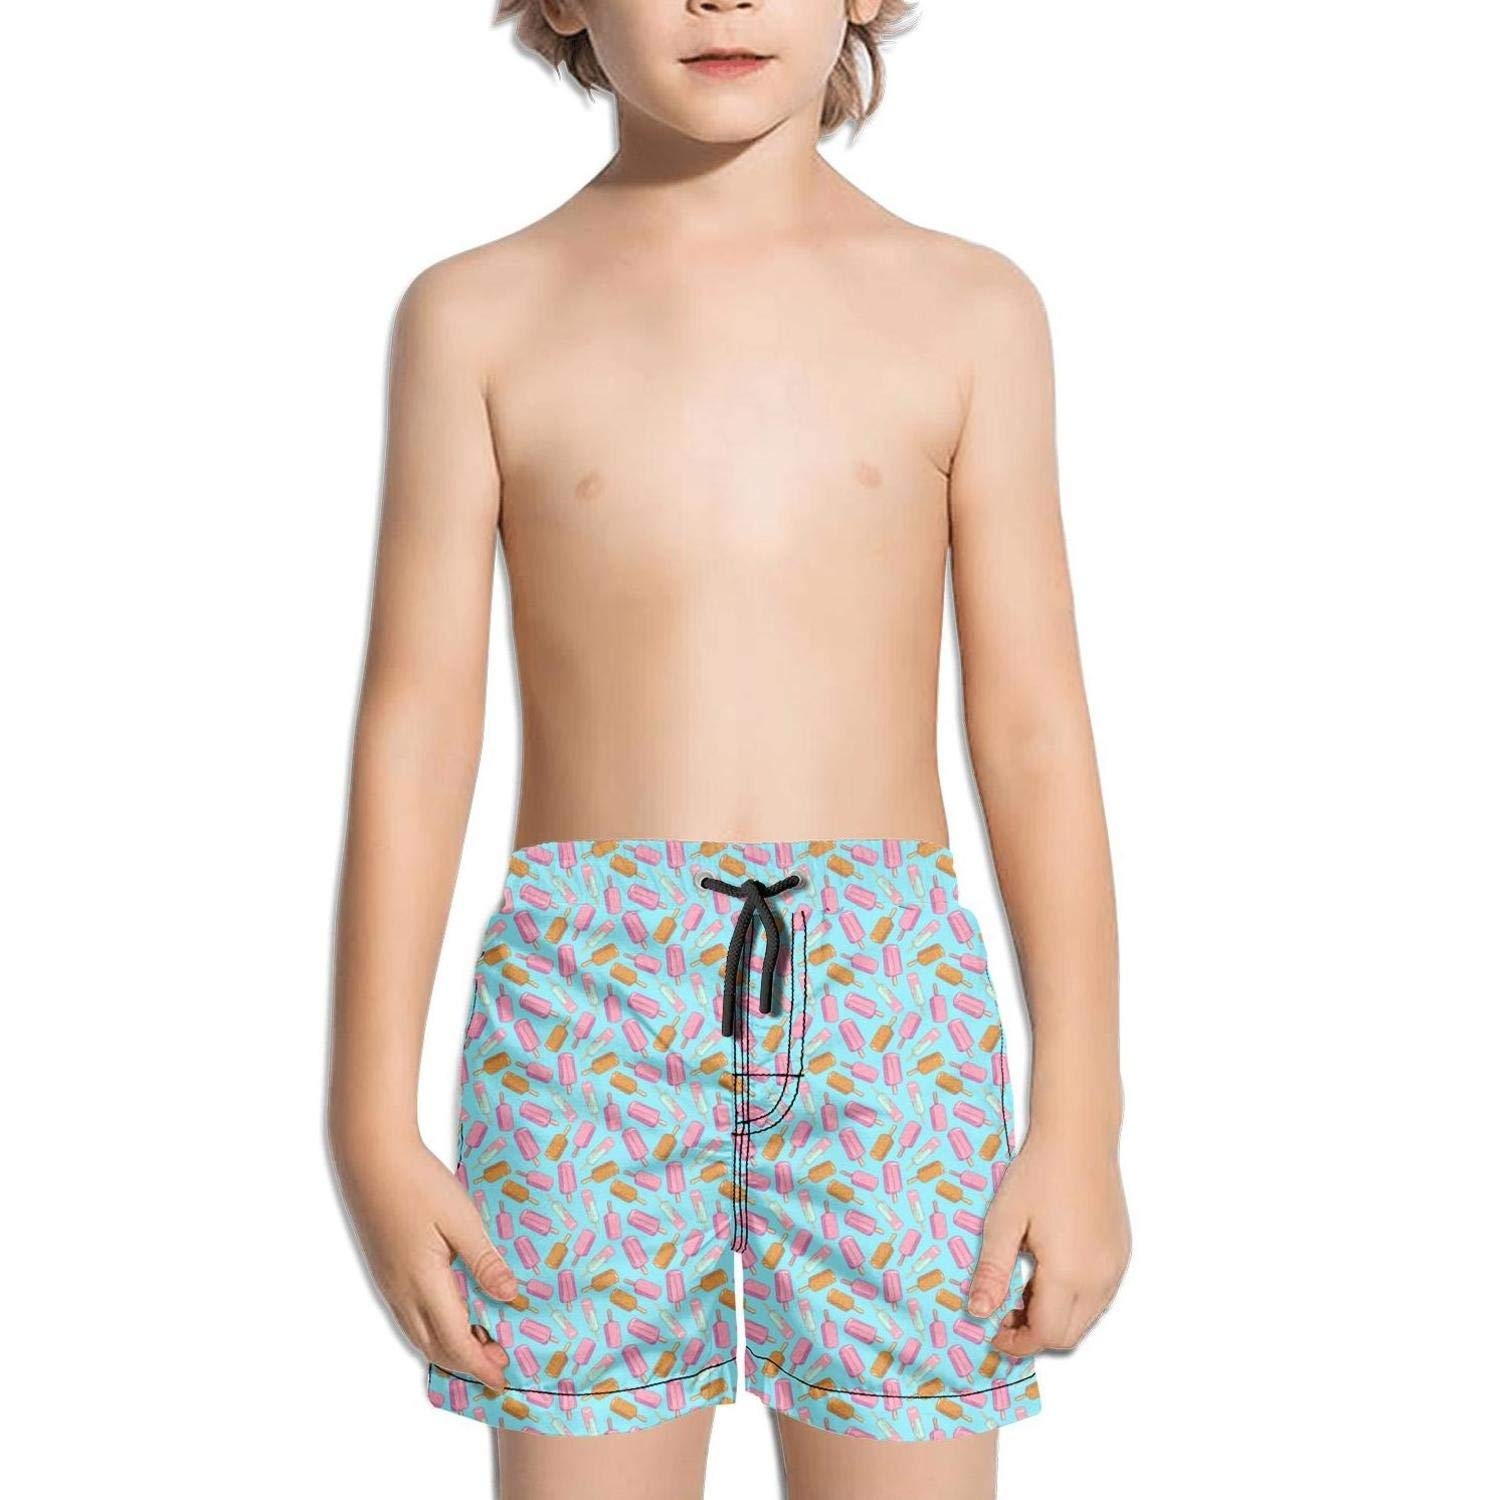 Ina Fers.Quick Dry Swim Trunks Love Pink Ice Cream Print Blue Shorts for Boys